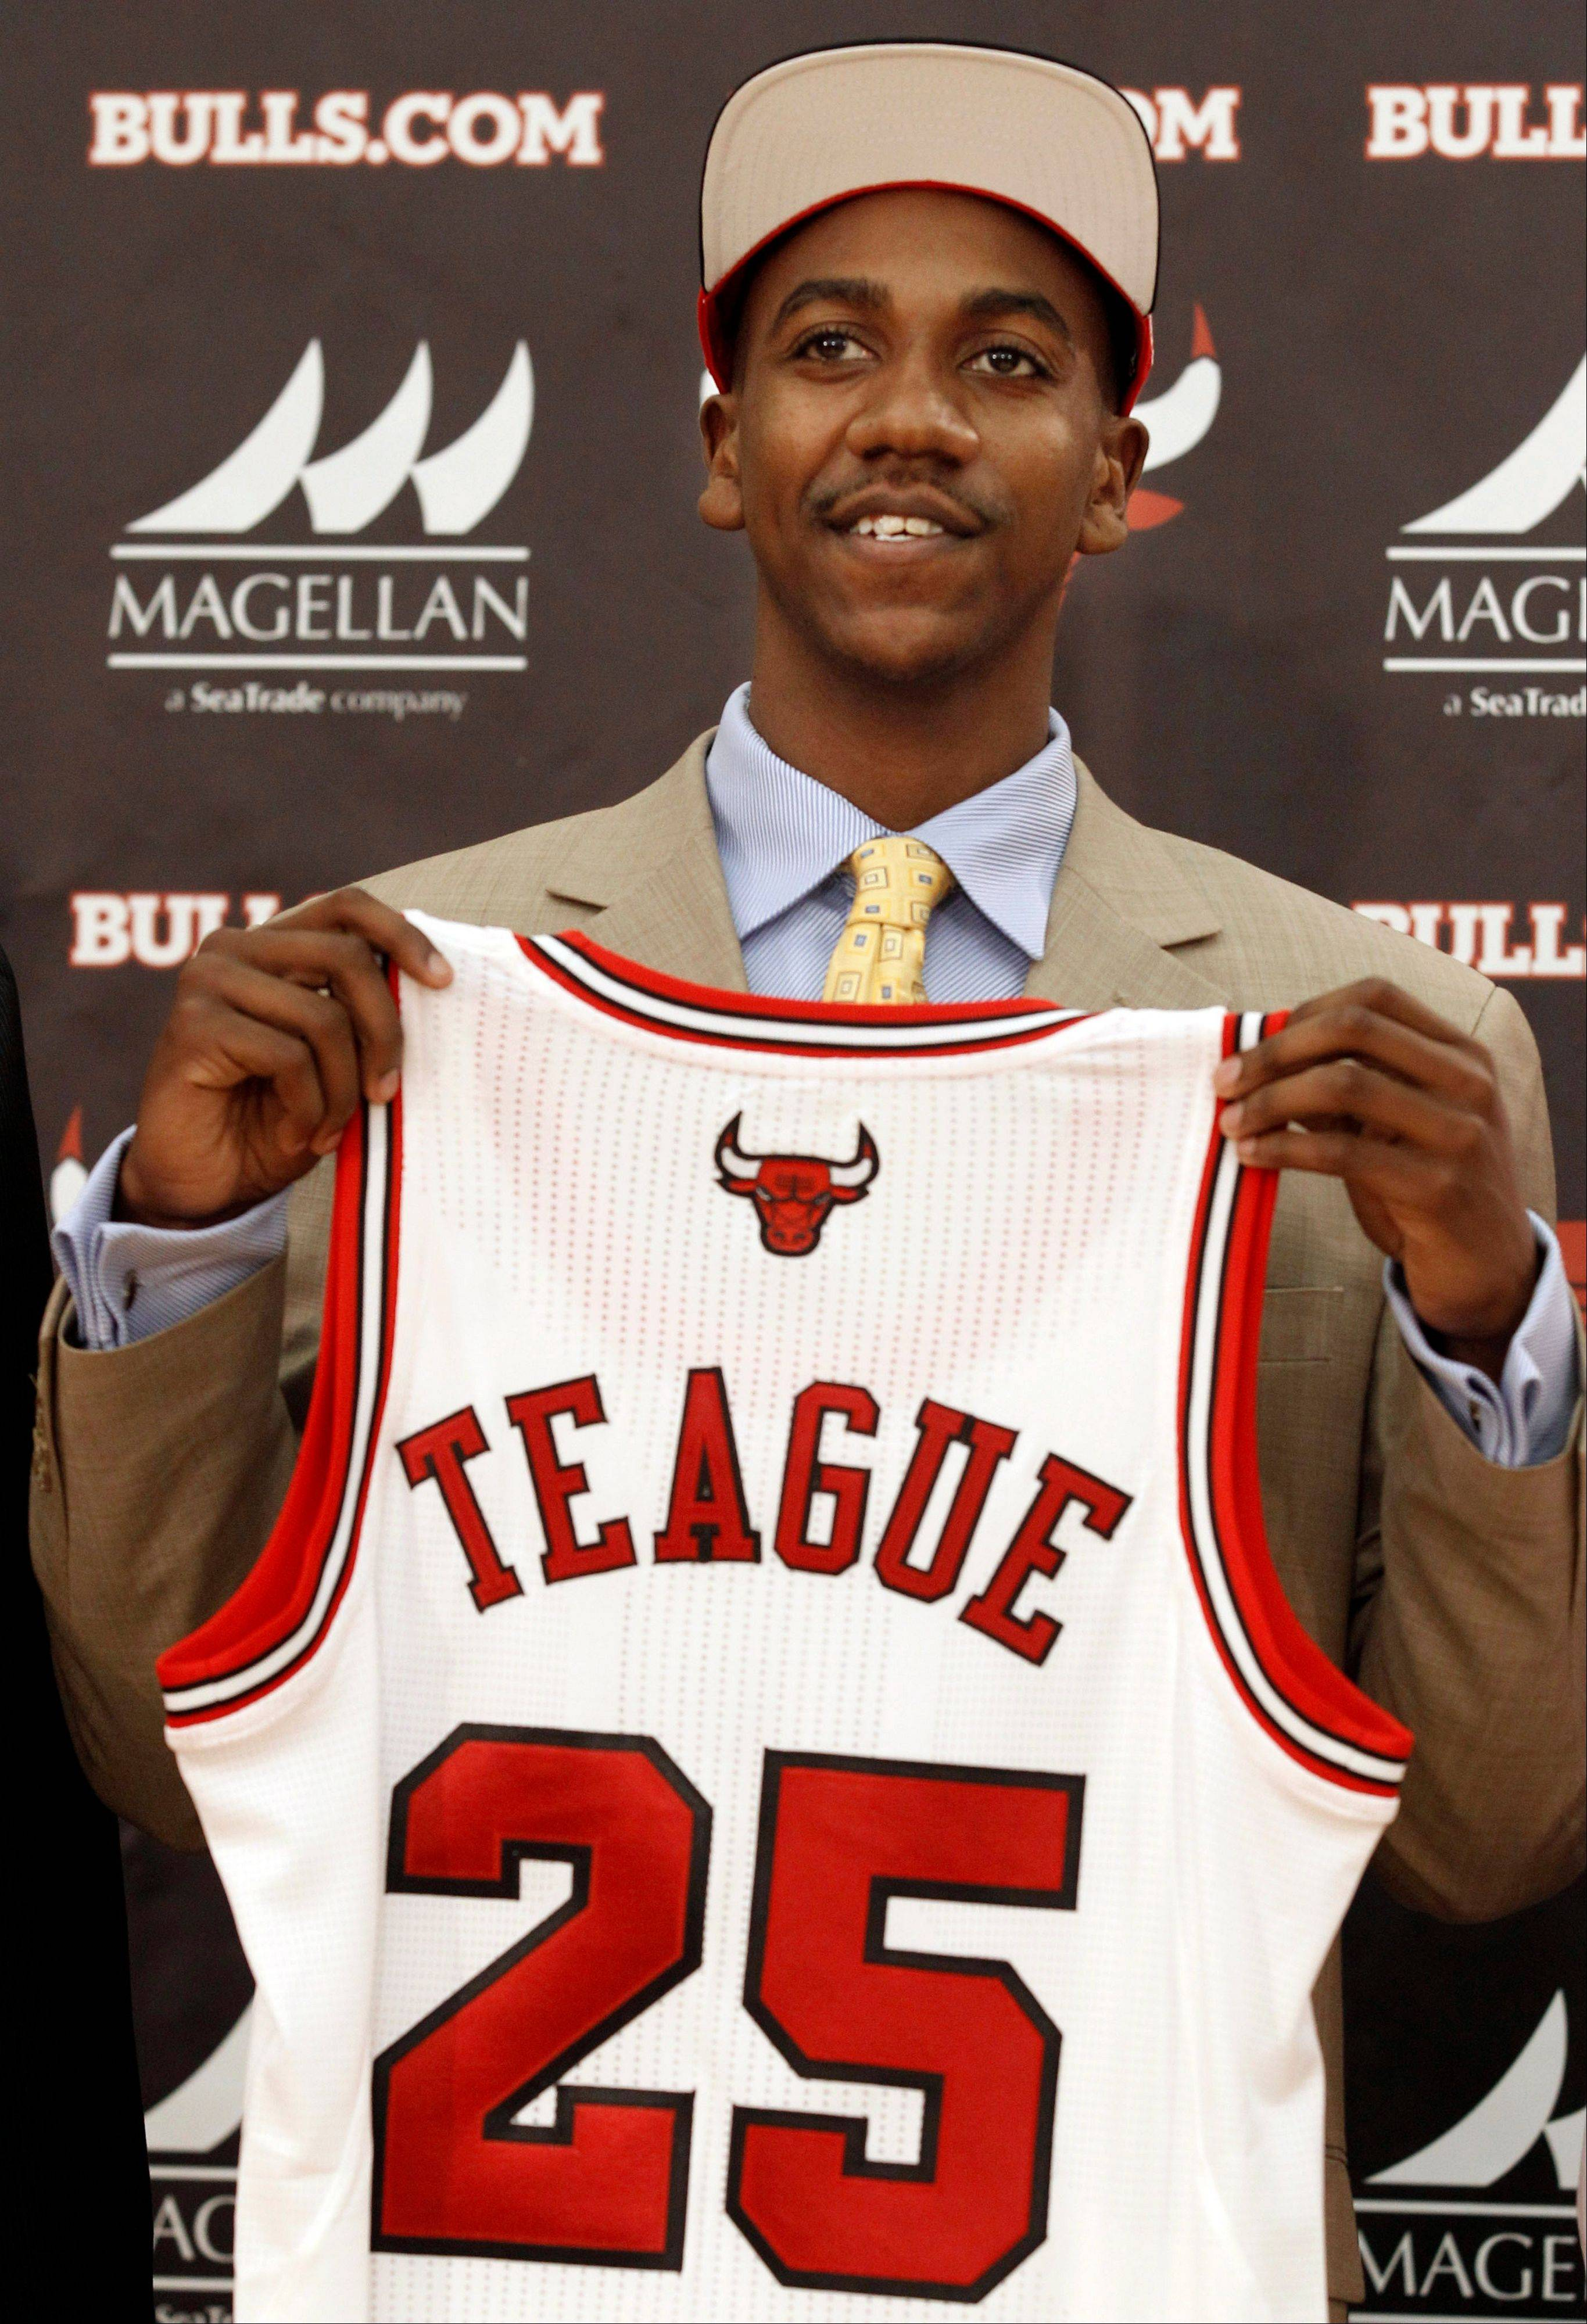 Marquis Teague holds up his new jersey during a Bulls news conference Monday at the Berto Center.